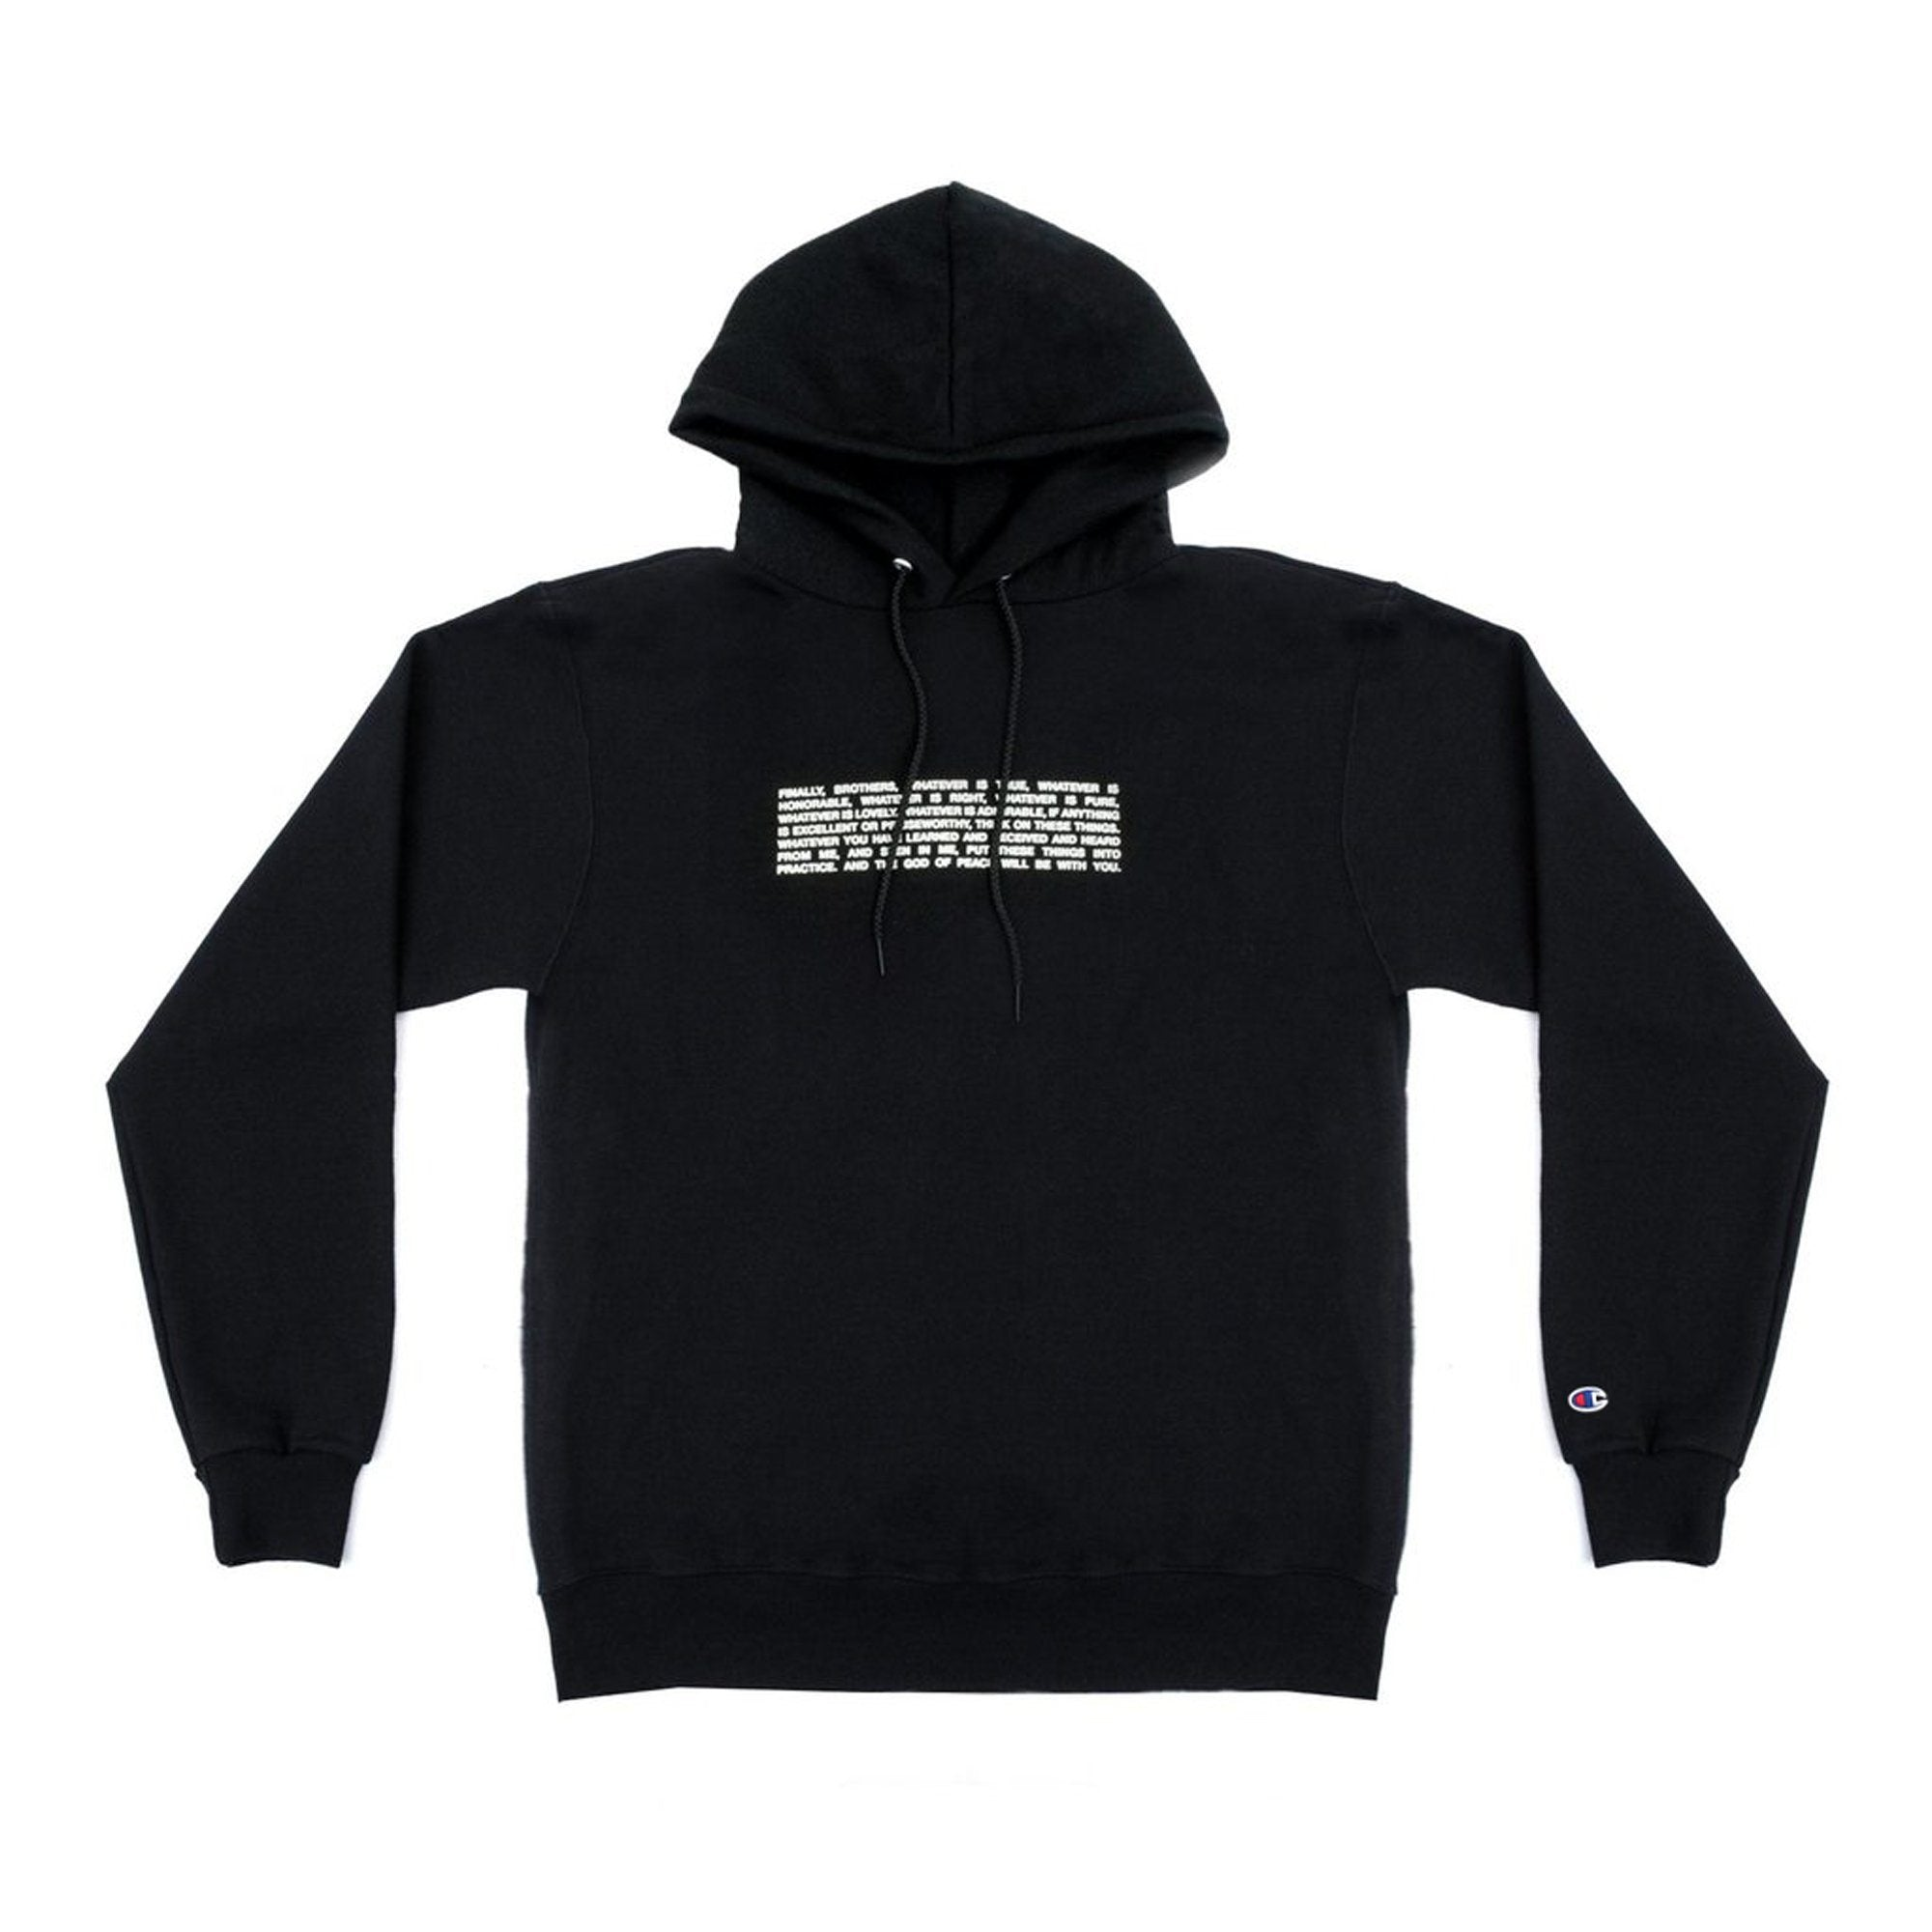 Andy Mineo x Champion 'Code' Pull Over Hoodie